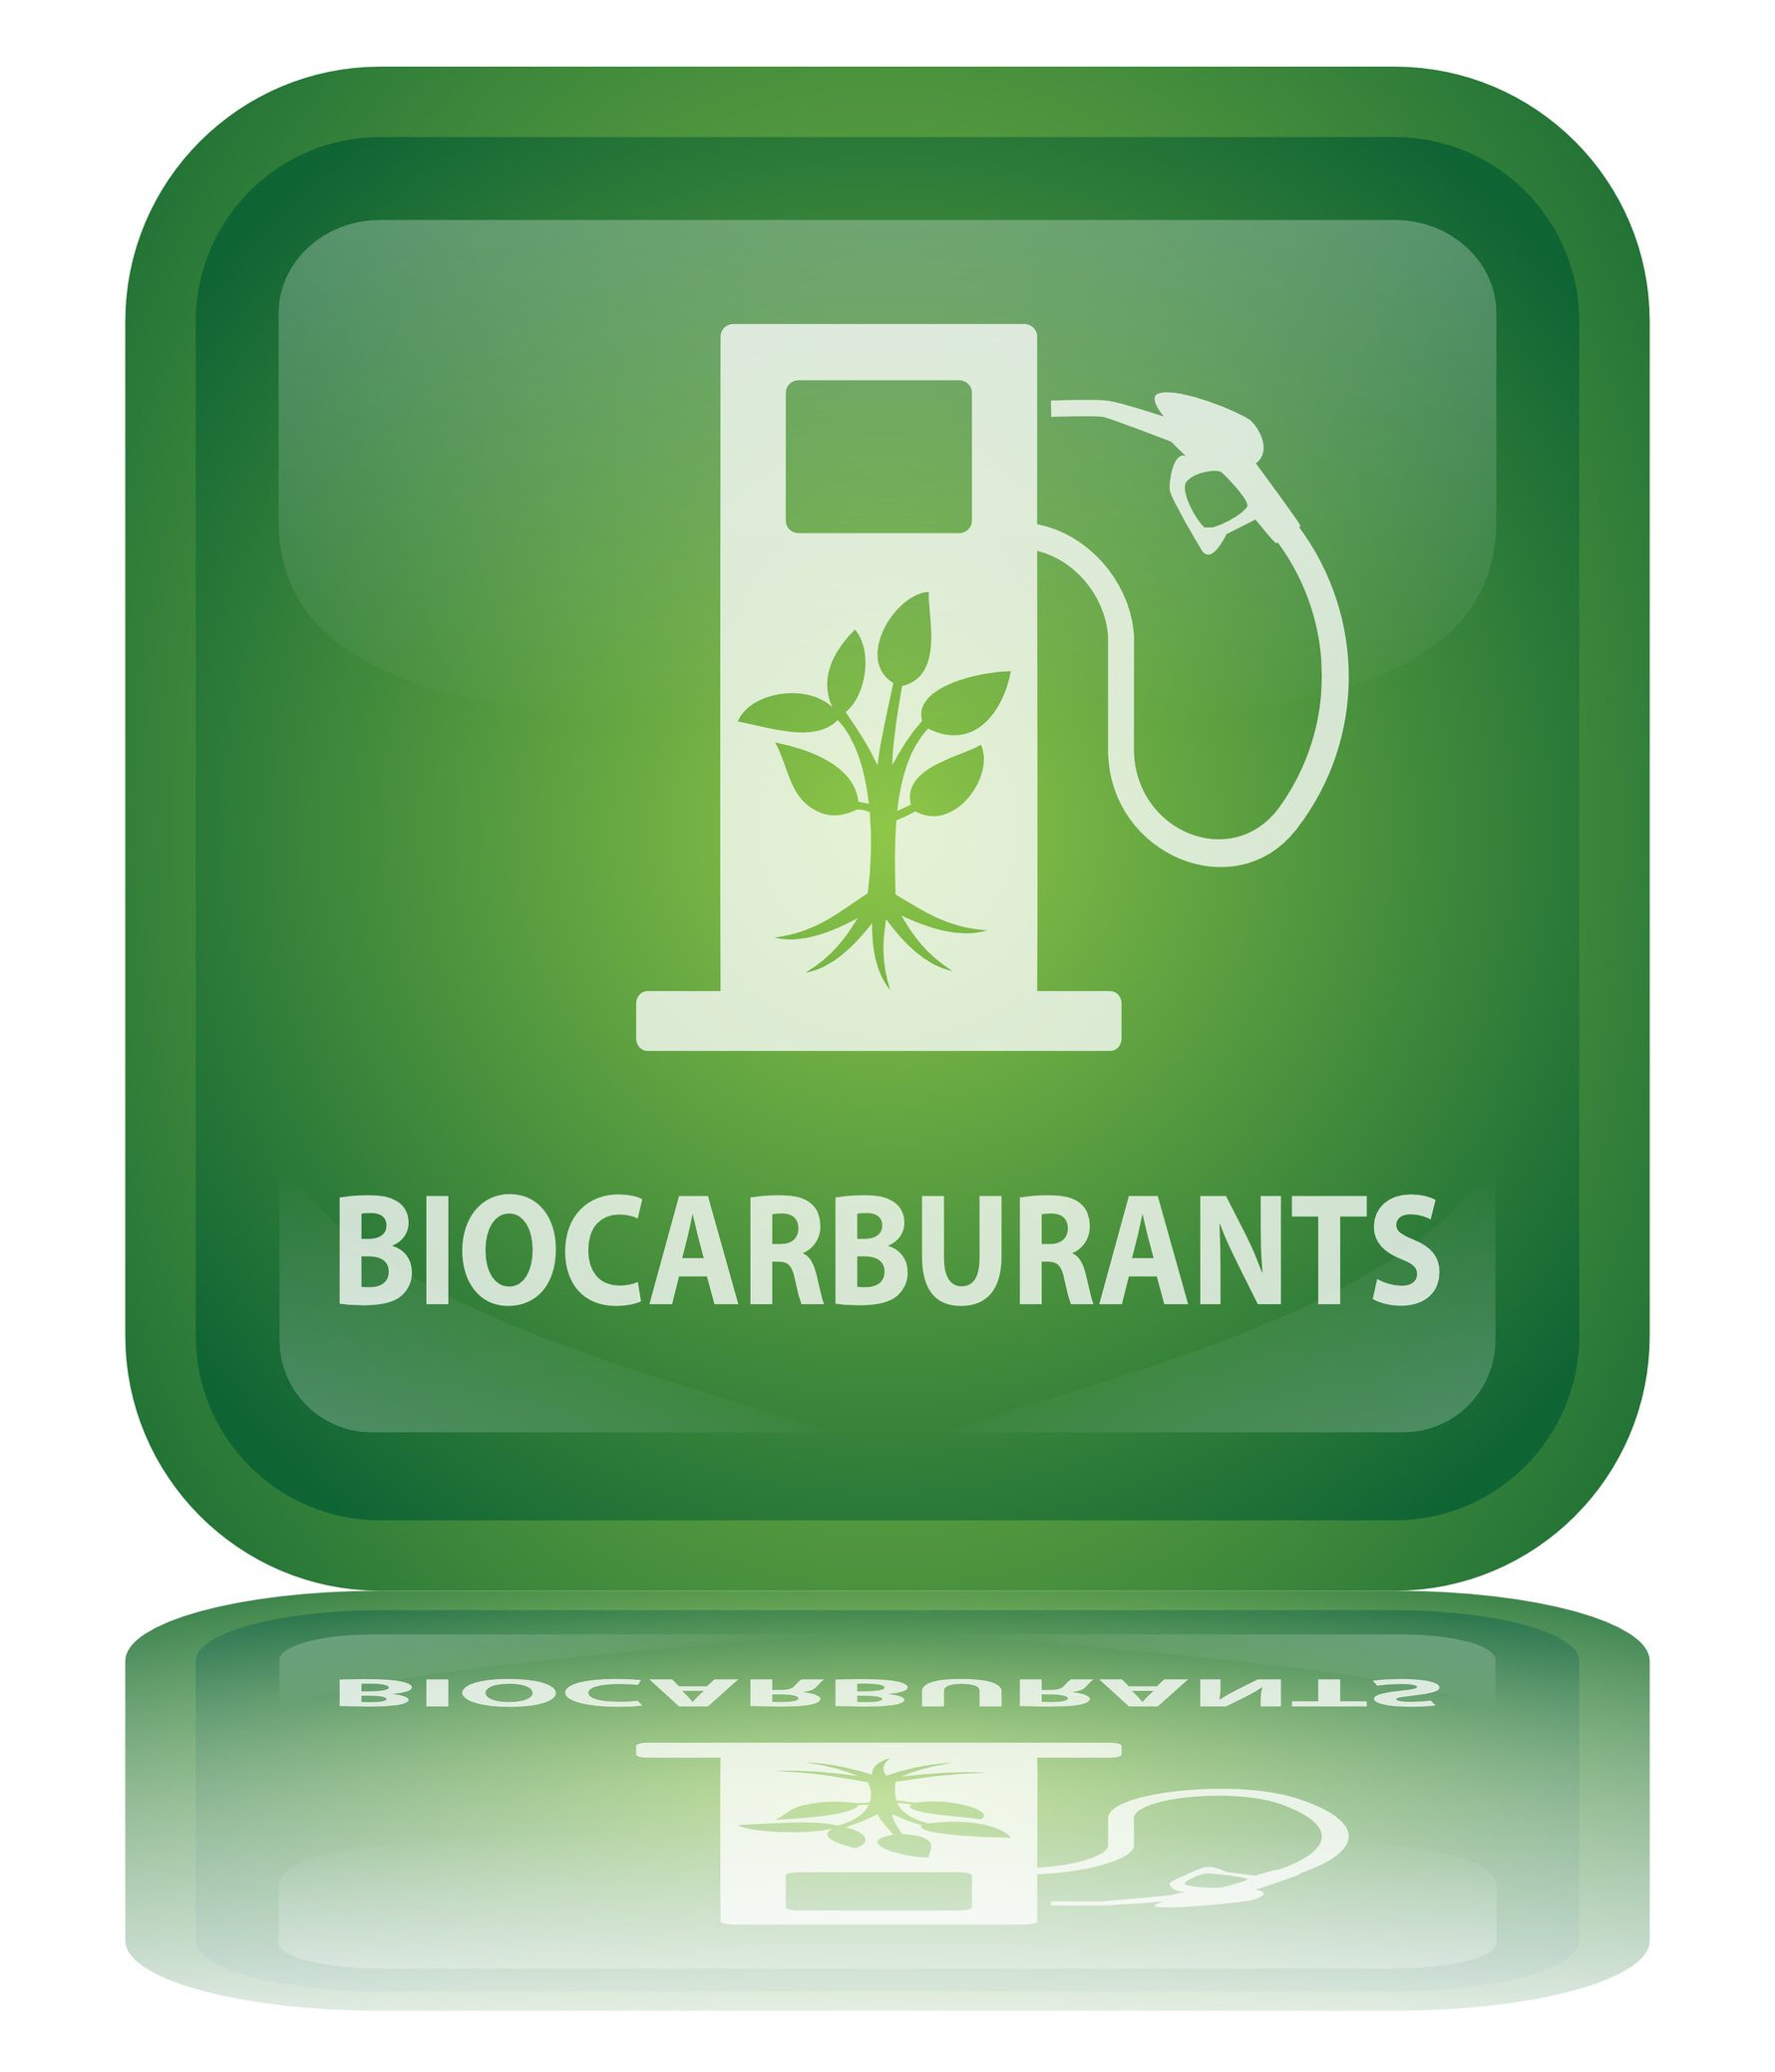 Biocarburants